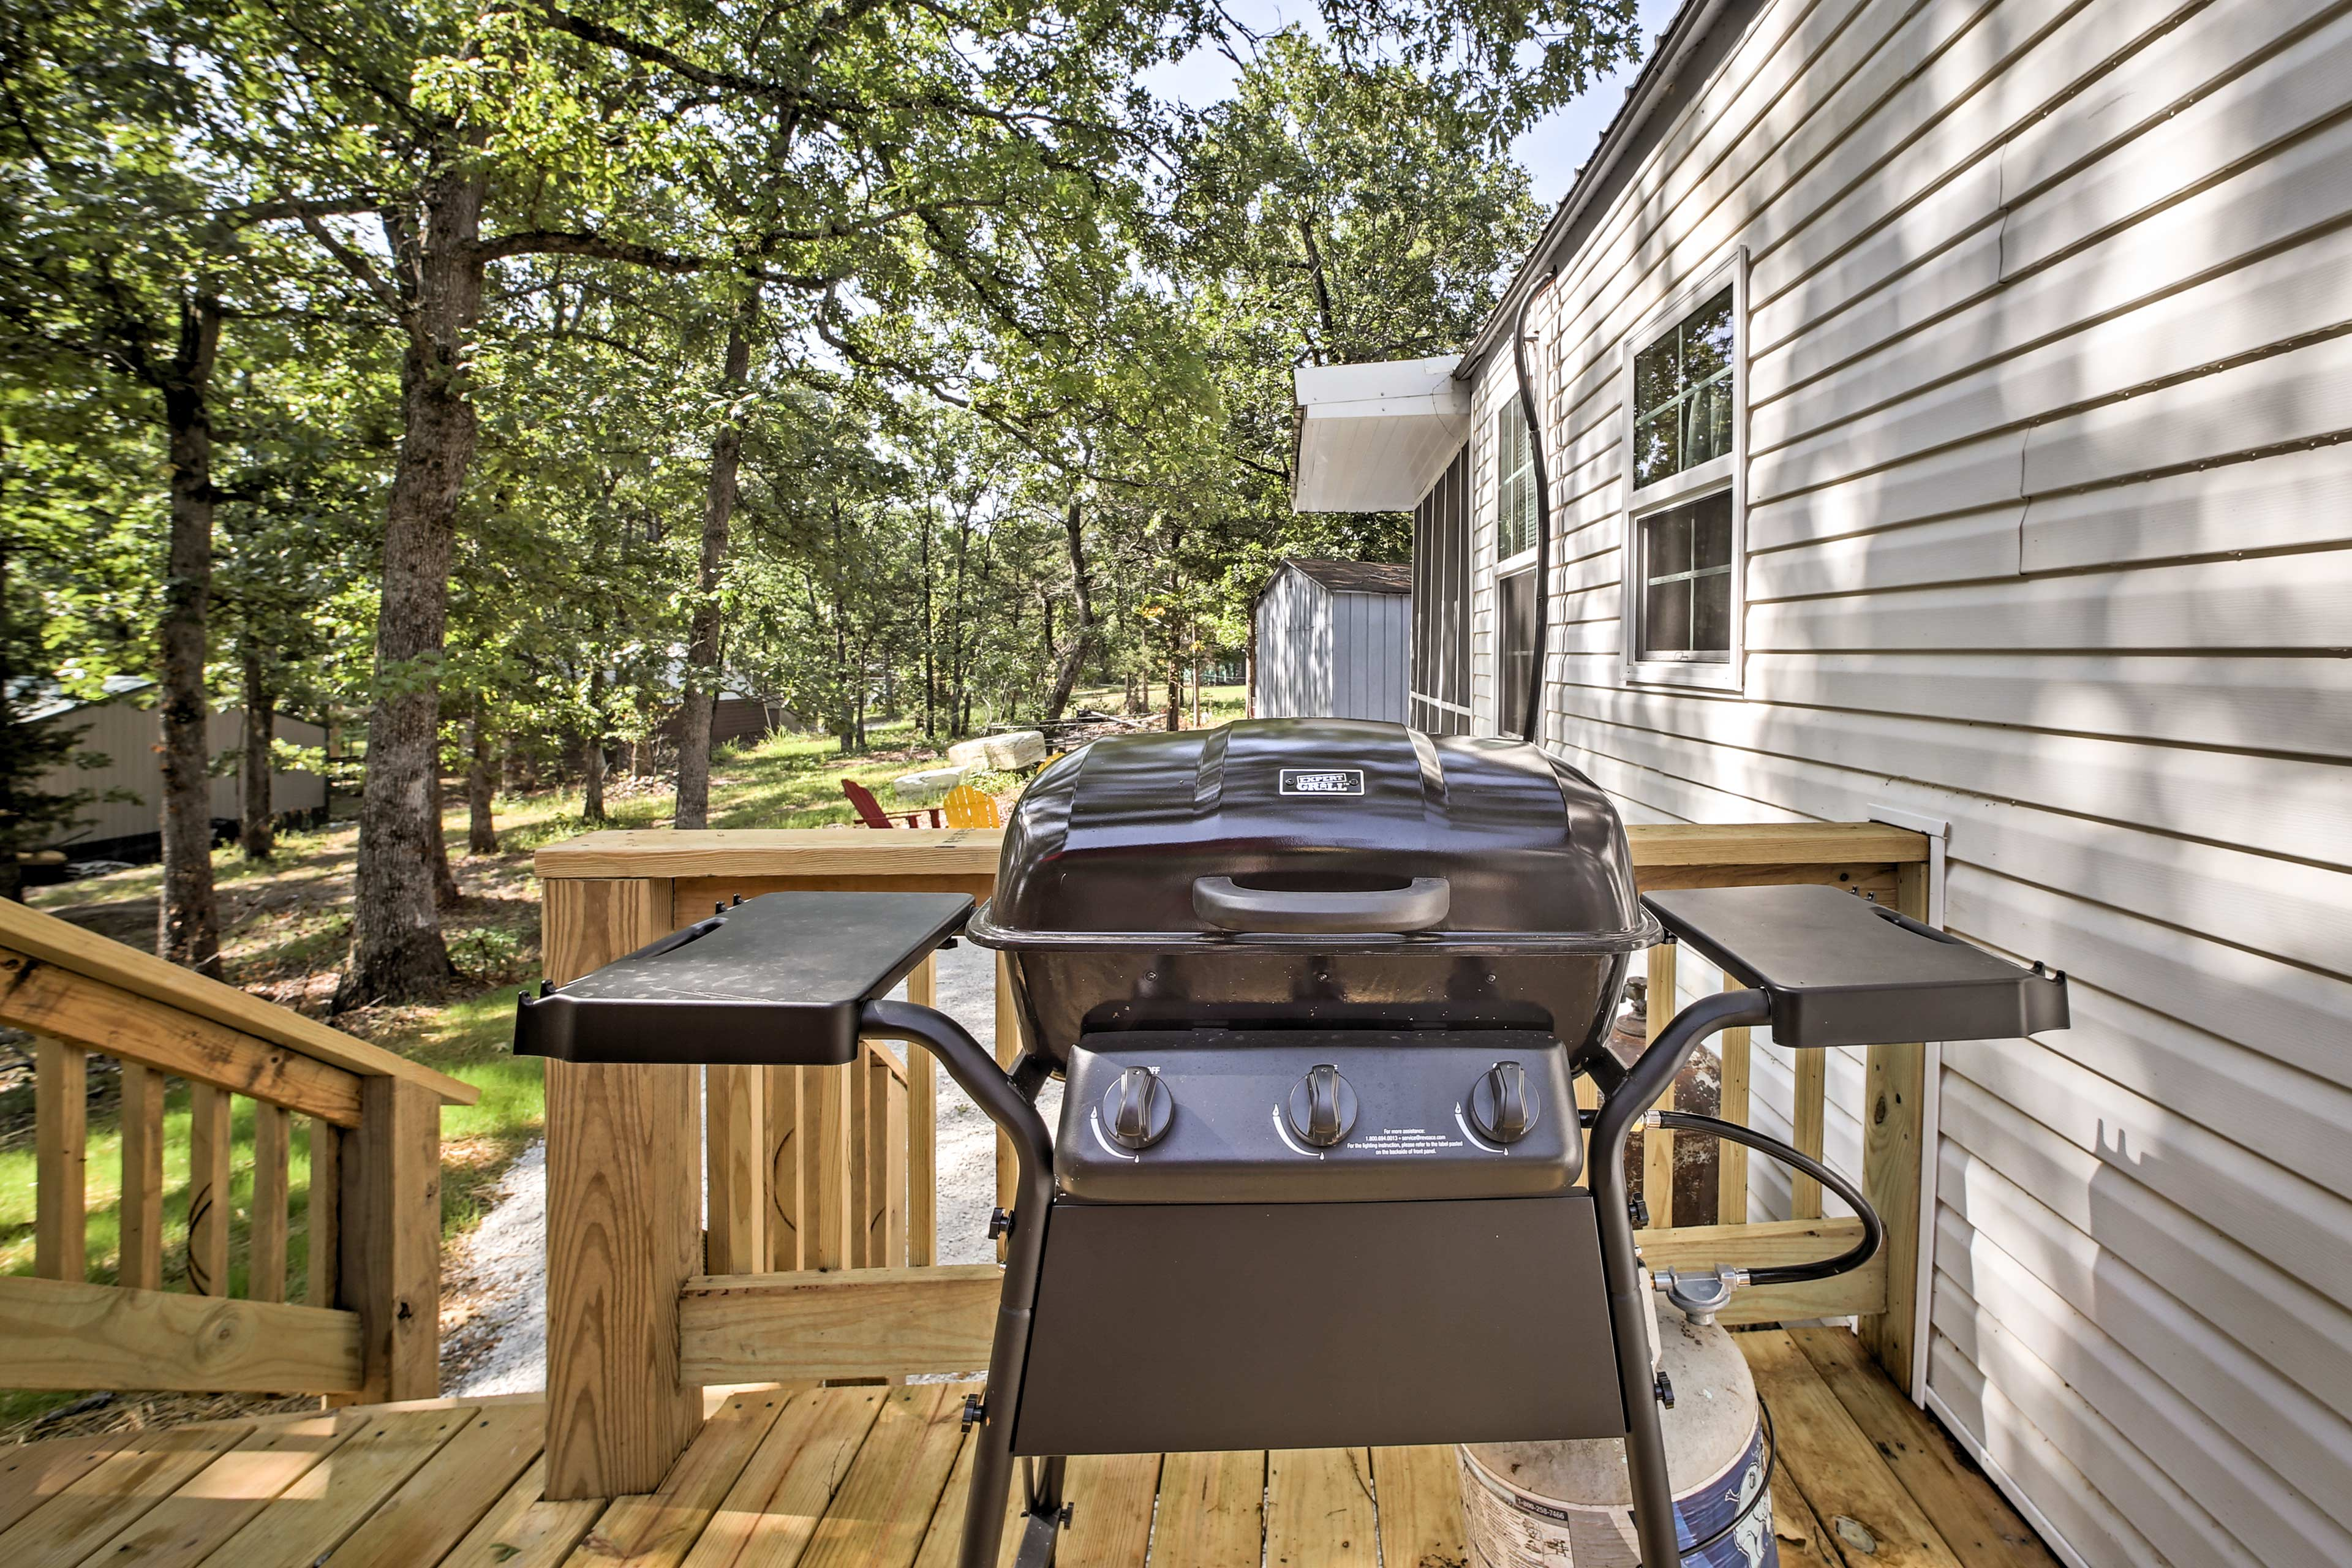 Grill up the fish you caught on Bull Shoals Lake that day!